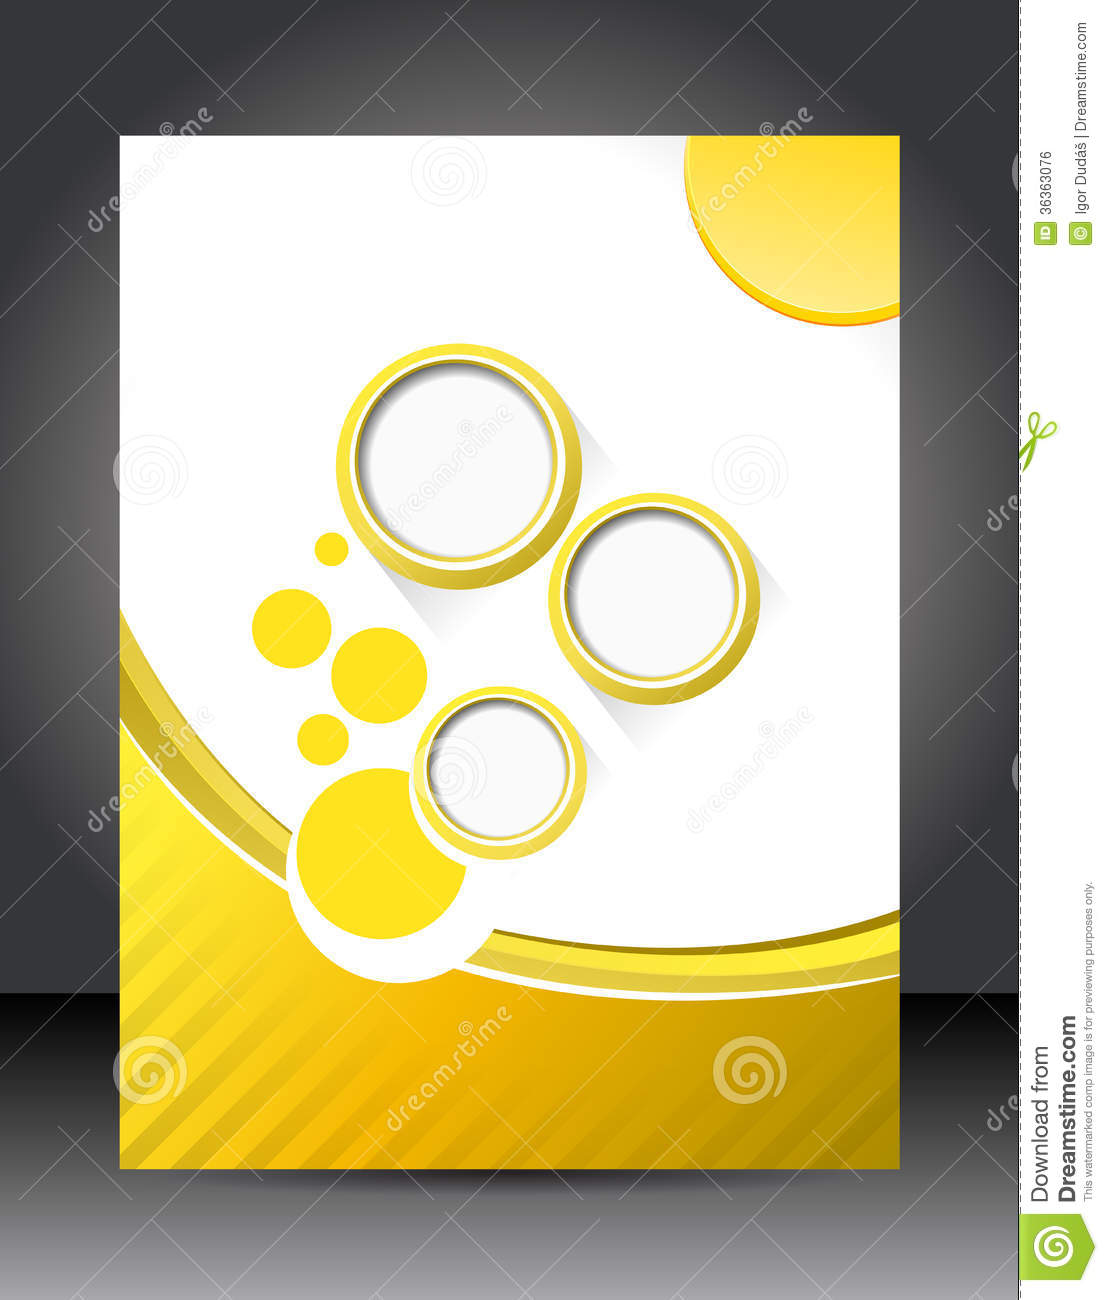 design layout template royalty free stock image